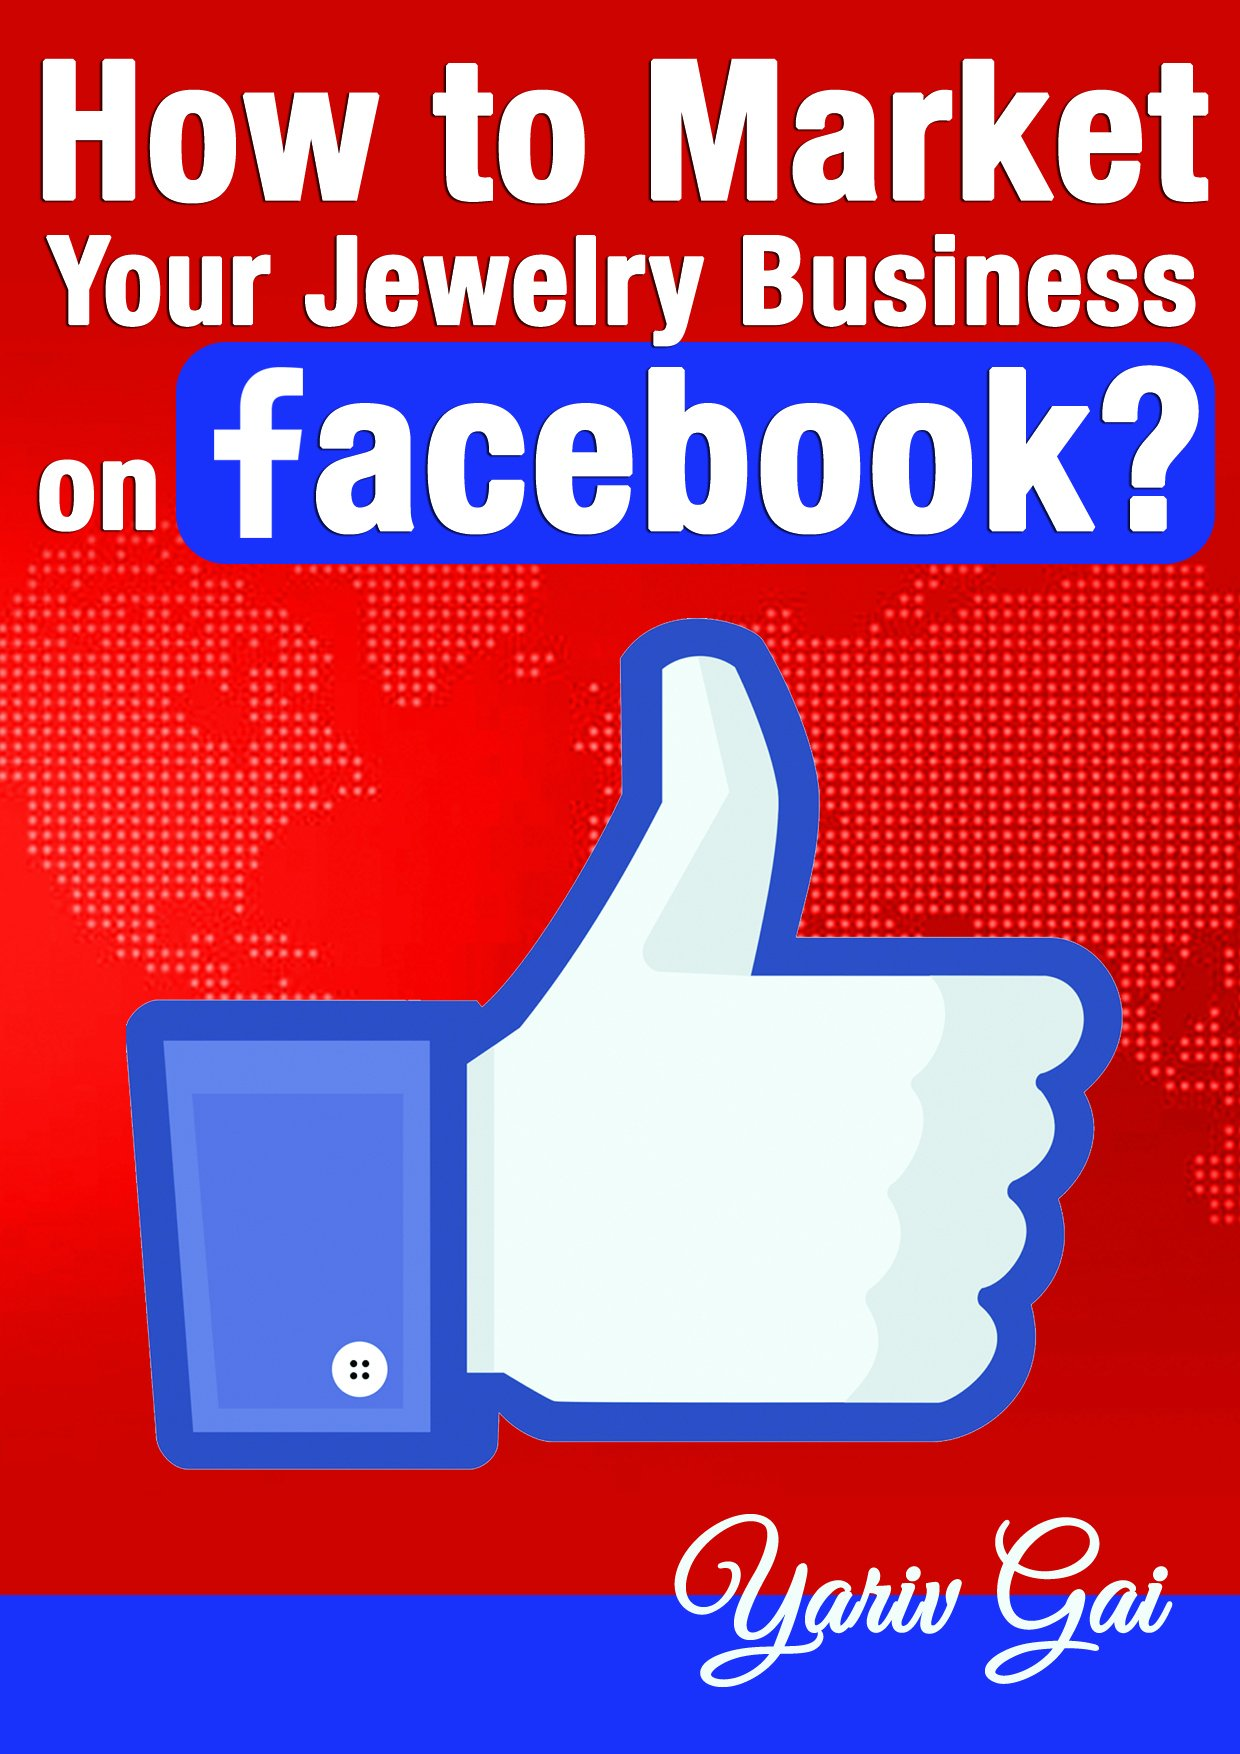 HOW TO MARKET YOUR JEWELRY BUSINESS ON FACEBOOK?: facebook for business (sell jewelry 3)